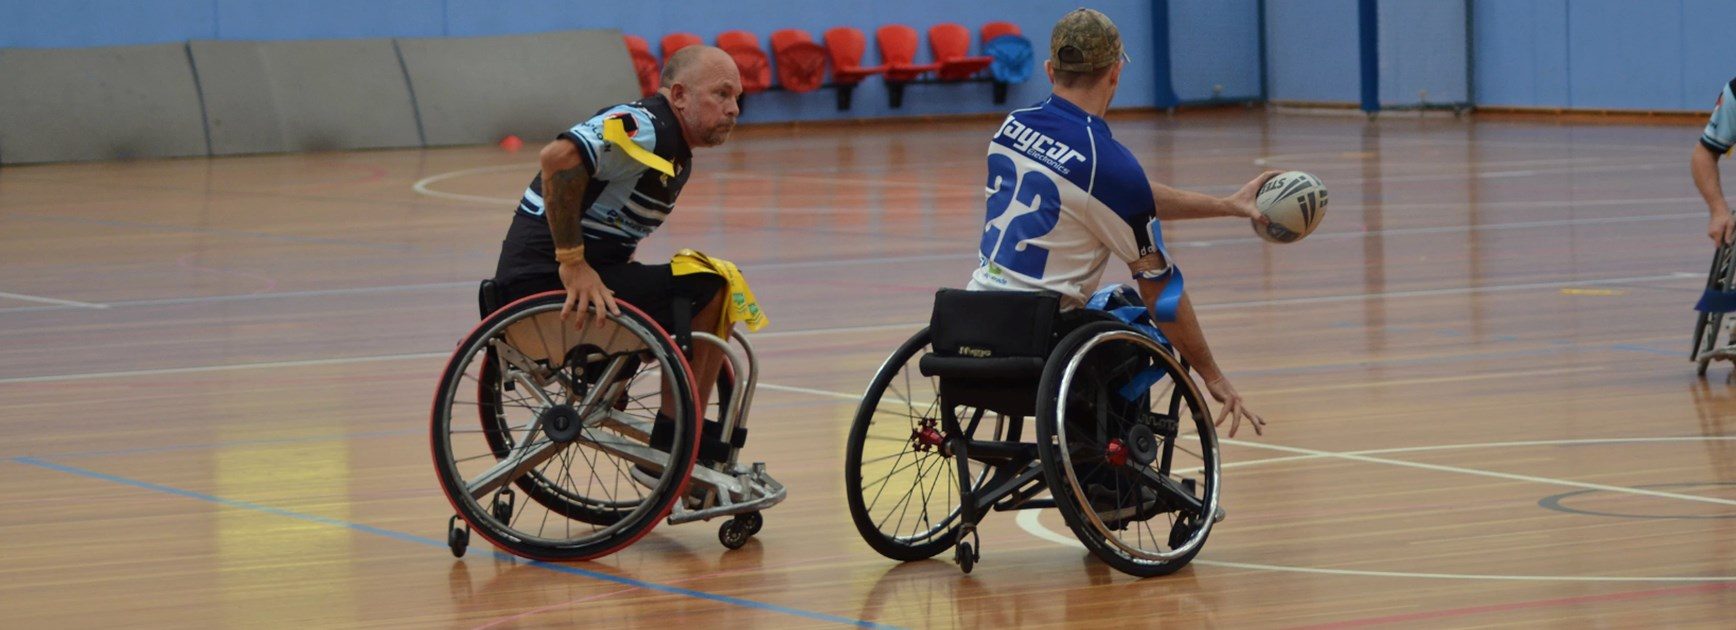 NSW Wheelchair Rugby League Development Program